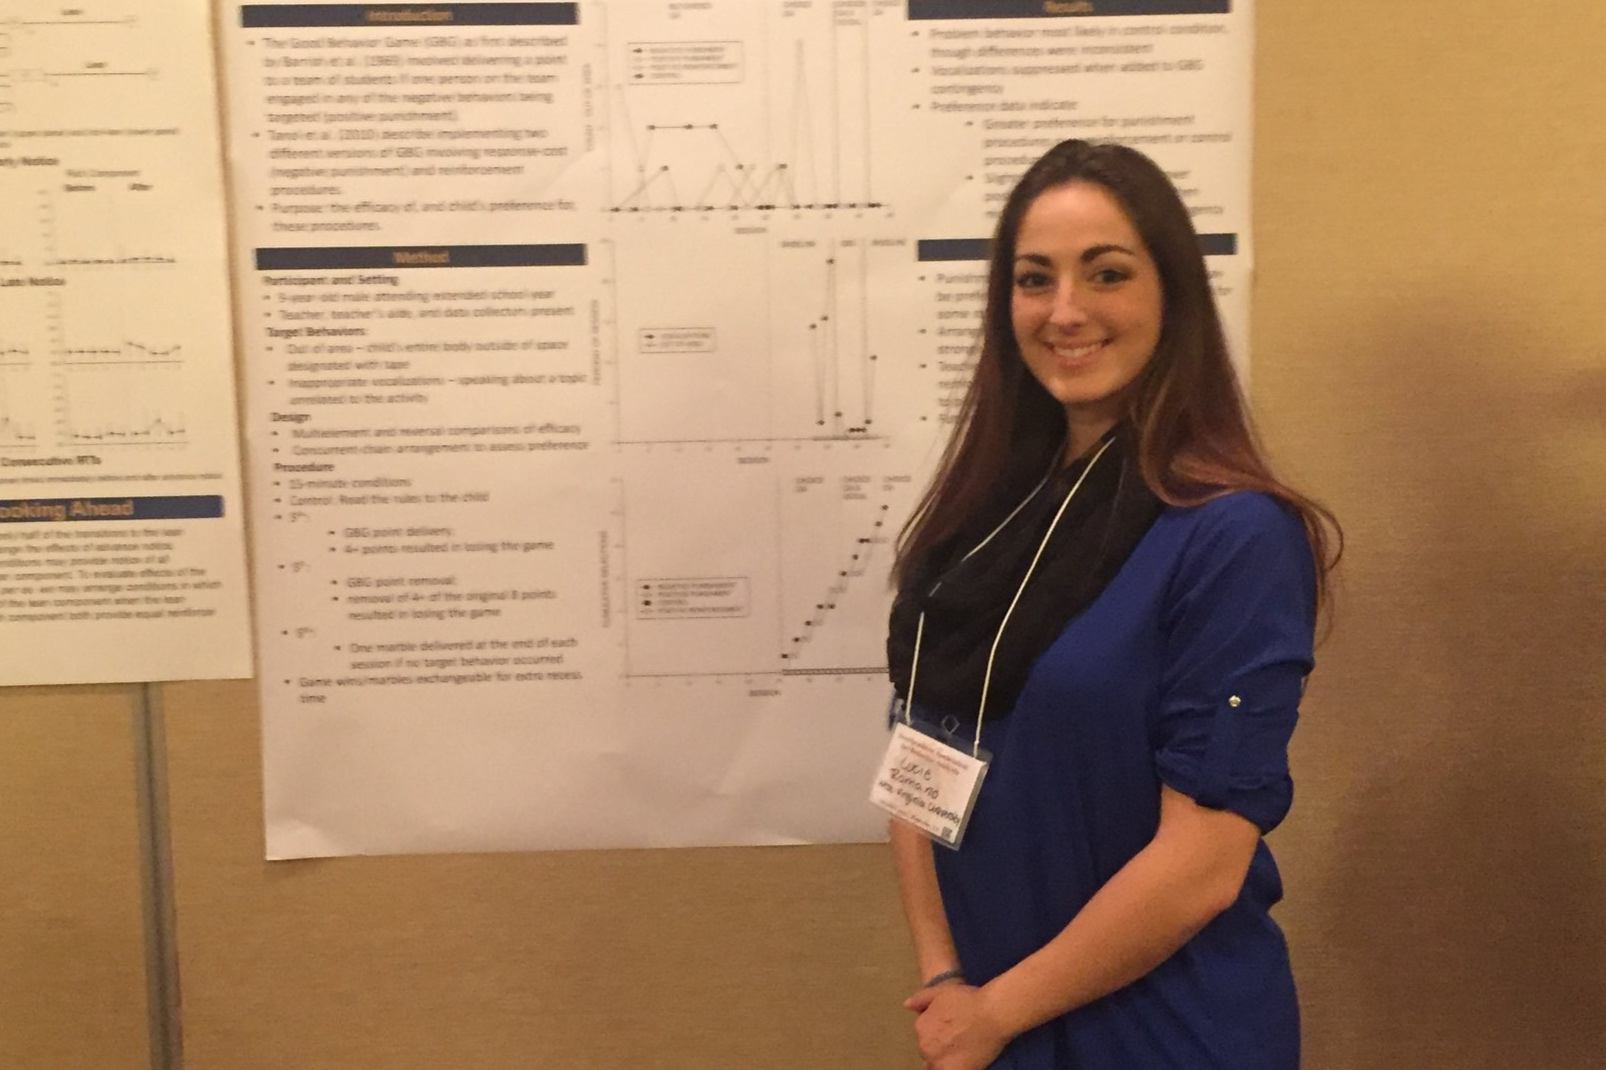 Lucie Romano  received her MS in 2018. Her thesis assessed curricular revision as a possible treatment for escape-maintained behavior. She is now an interventionist at FIT Learning Atlanta.